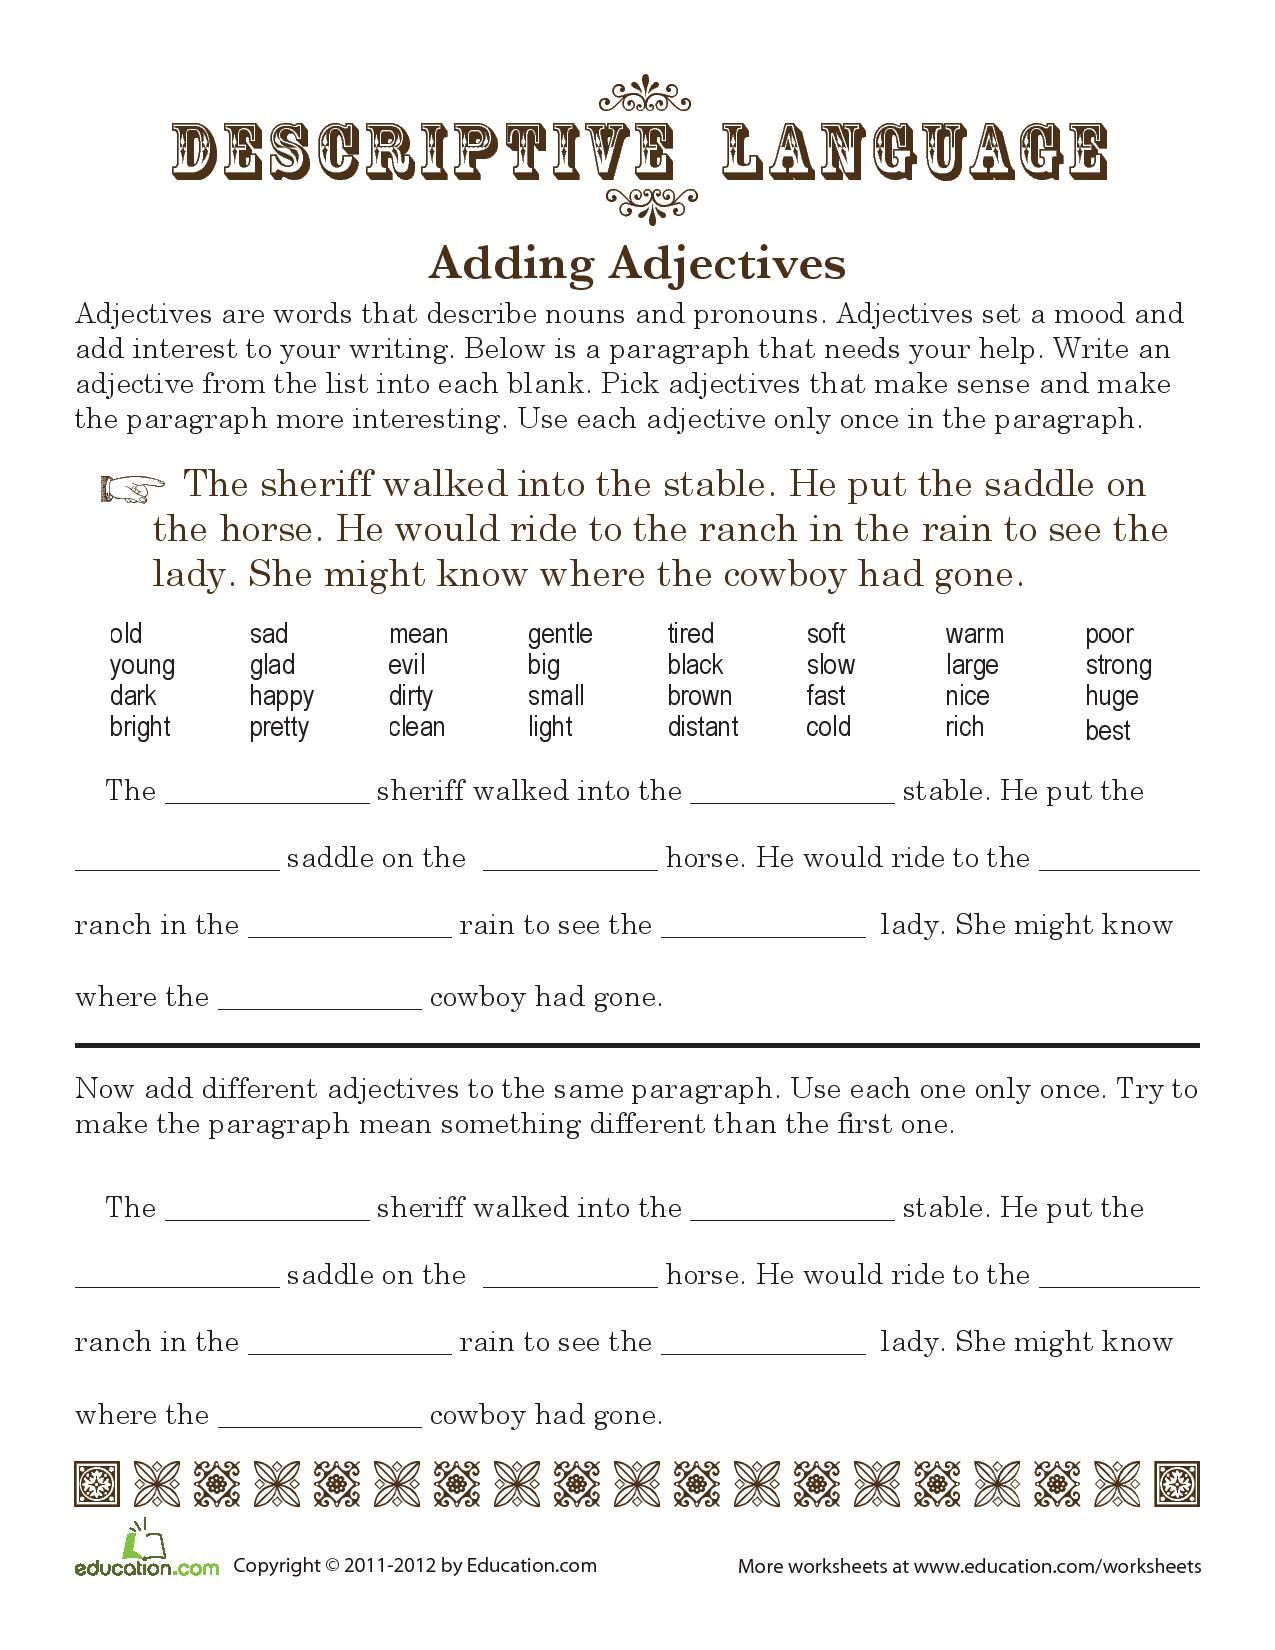 Time To Saddle Up Some Adjectives Descriptive Language Adds Interest To Writing For Fifth